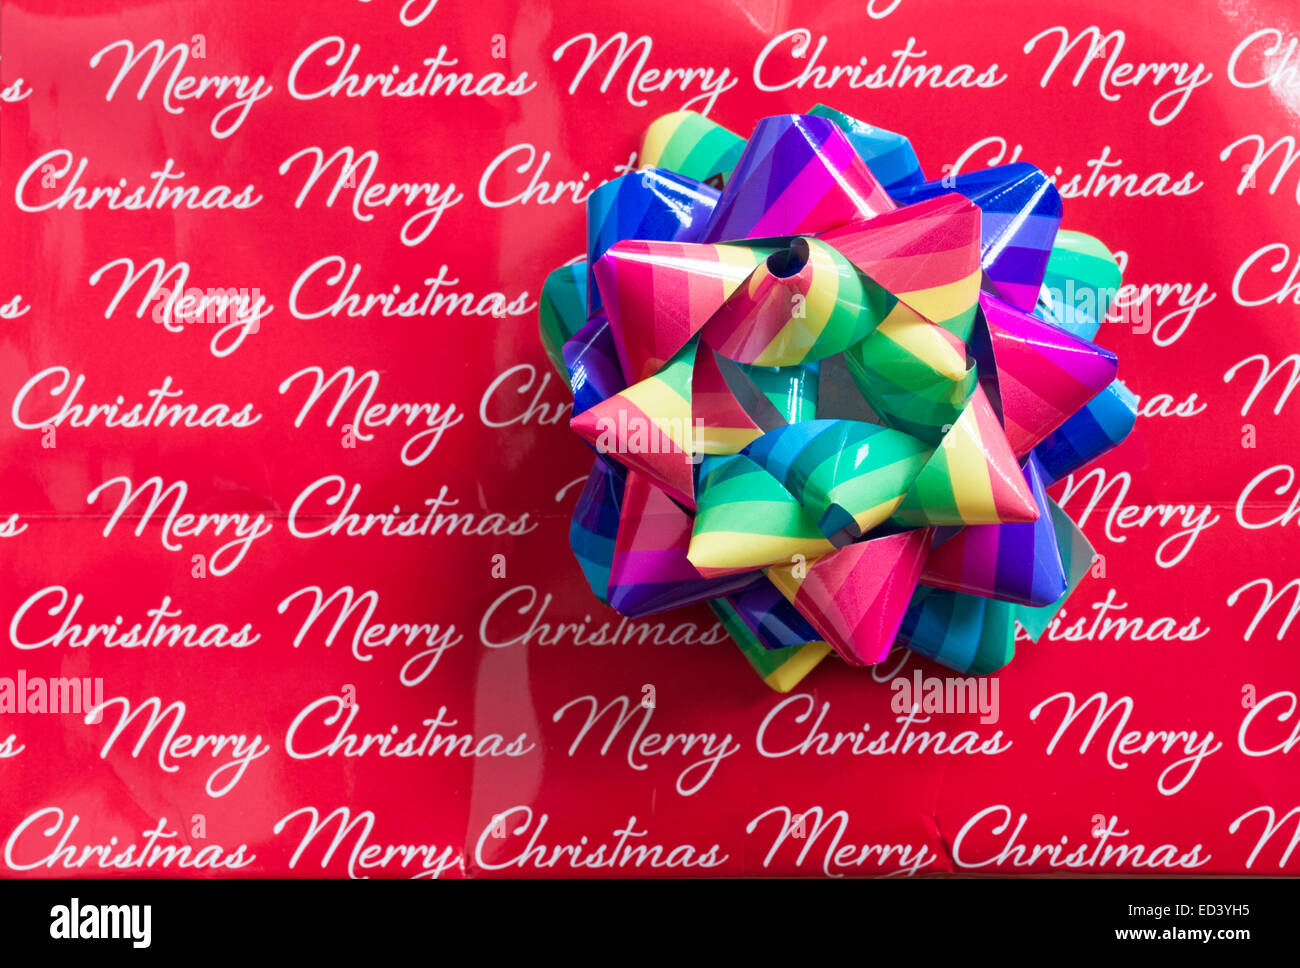 Colourful christmas gift bow stuck on merry christmas paper stock colourful christmas gift bow stuck on merry christmas paper negle Choice Image